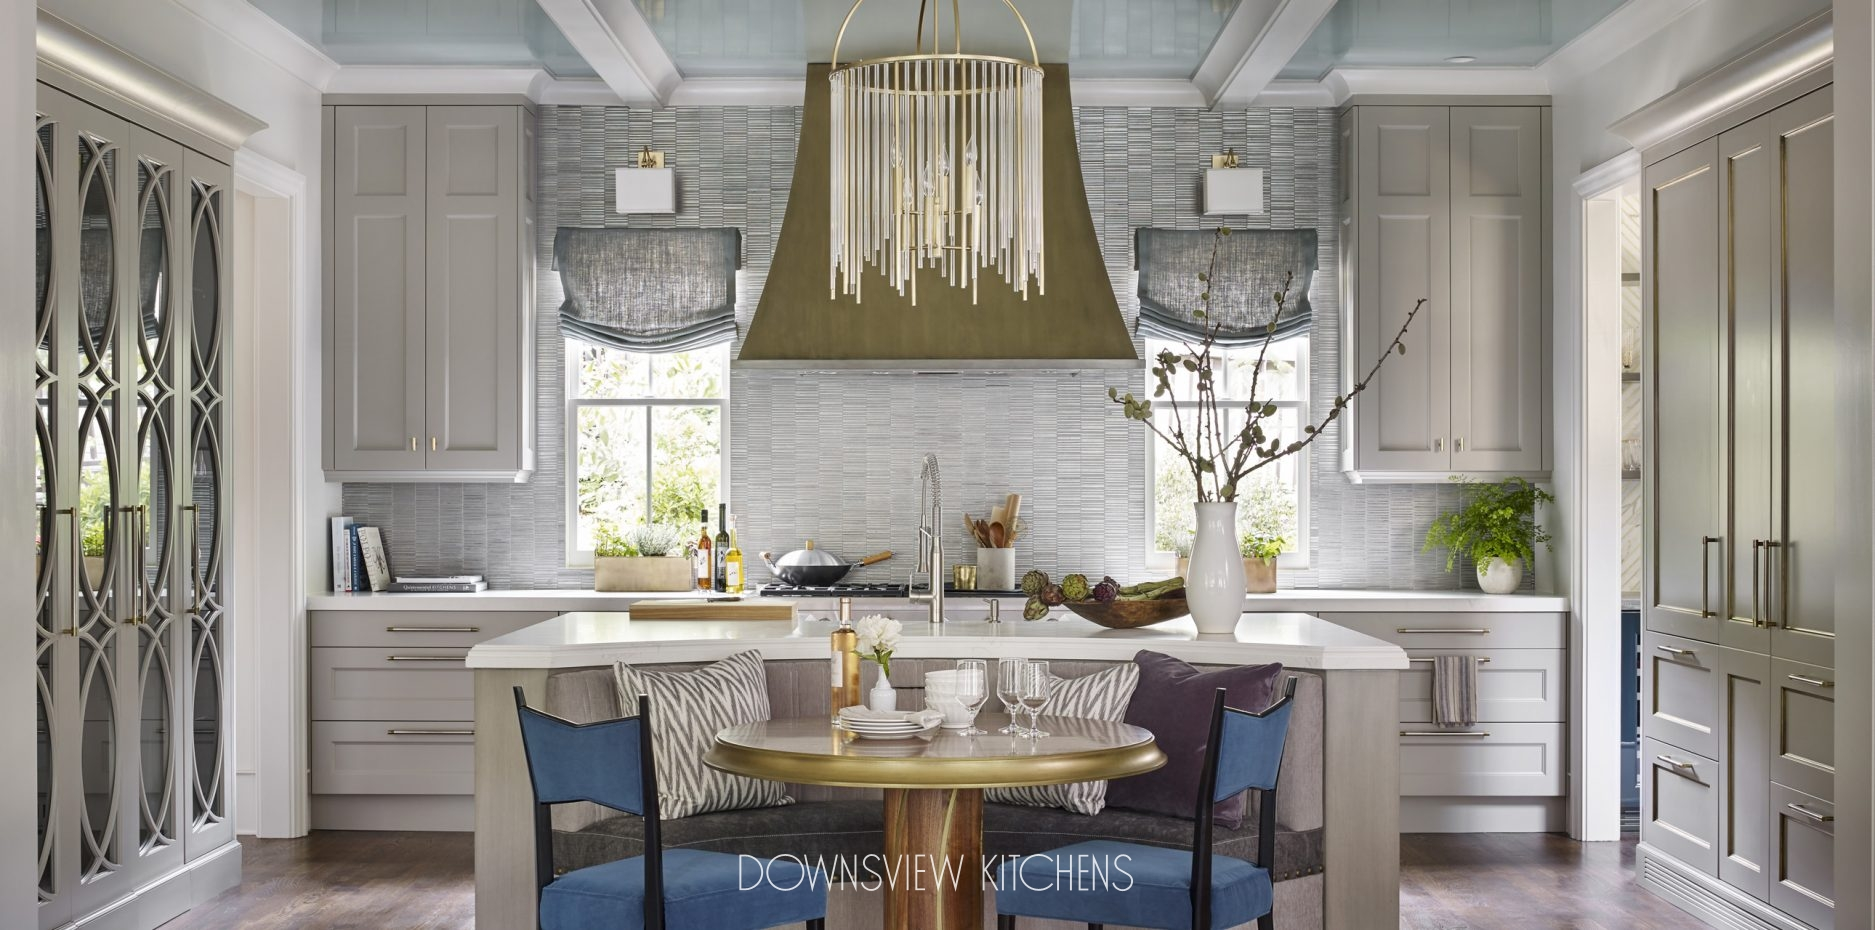 Artful Mix Downsview Kitchens And Fine Custom Cabinetry